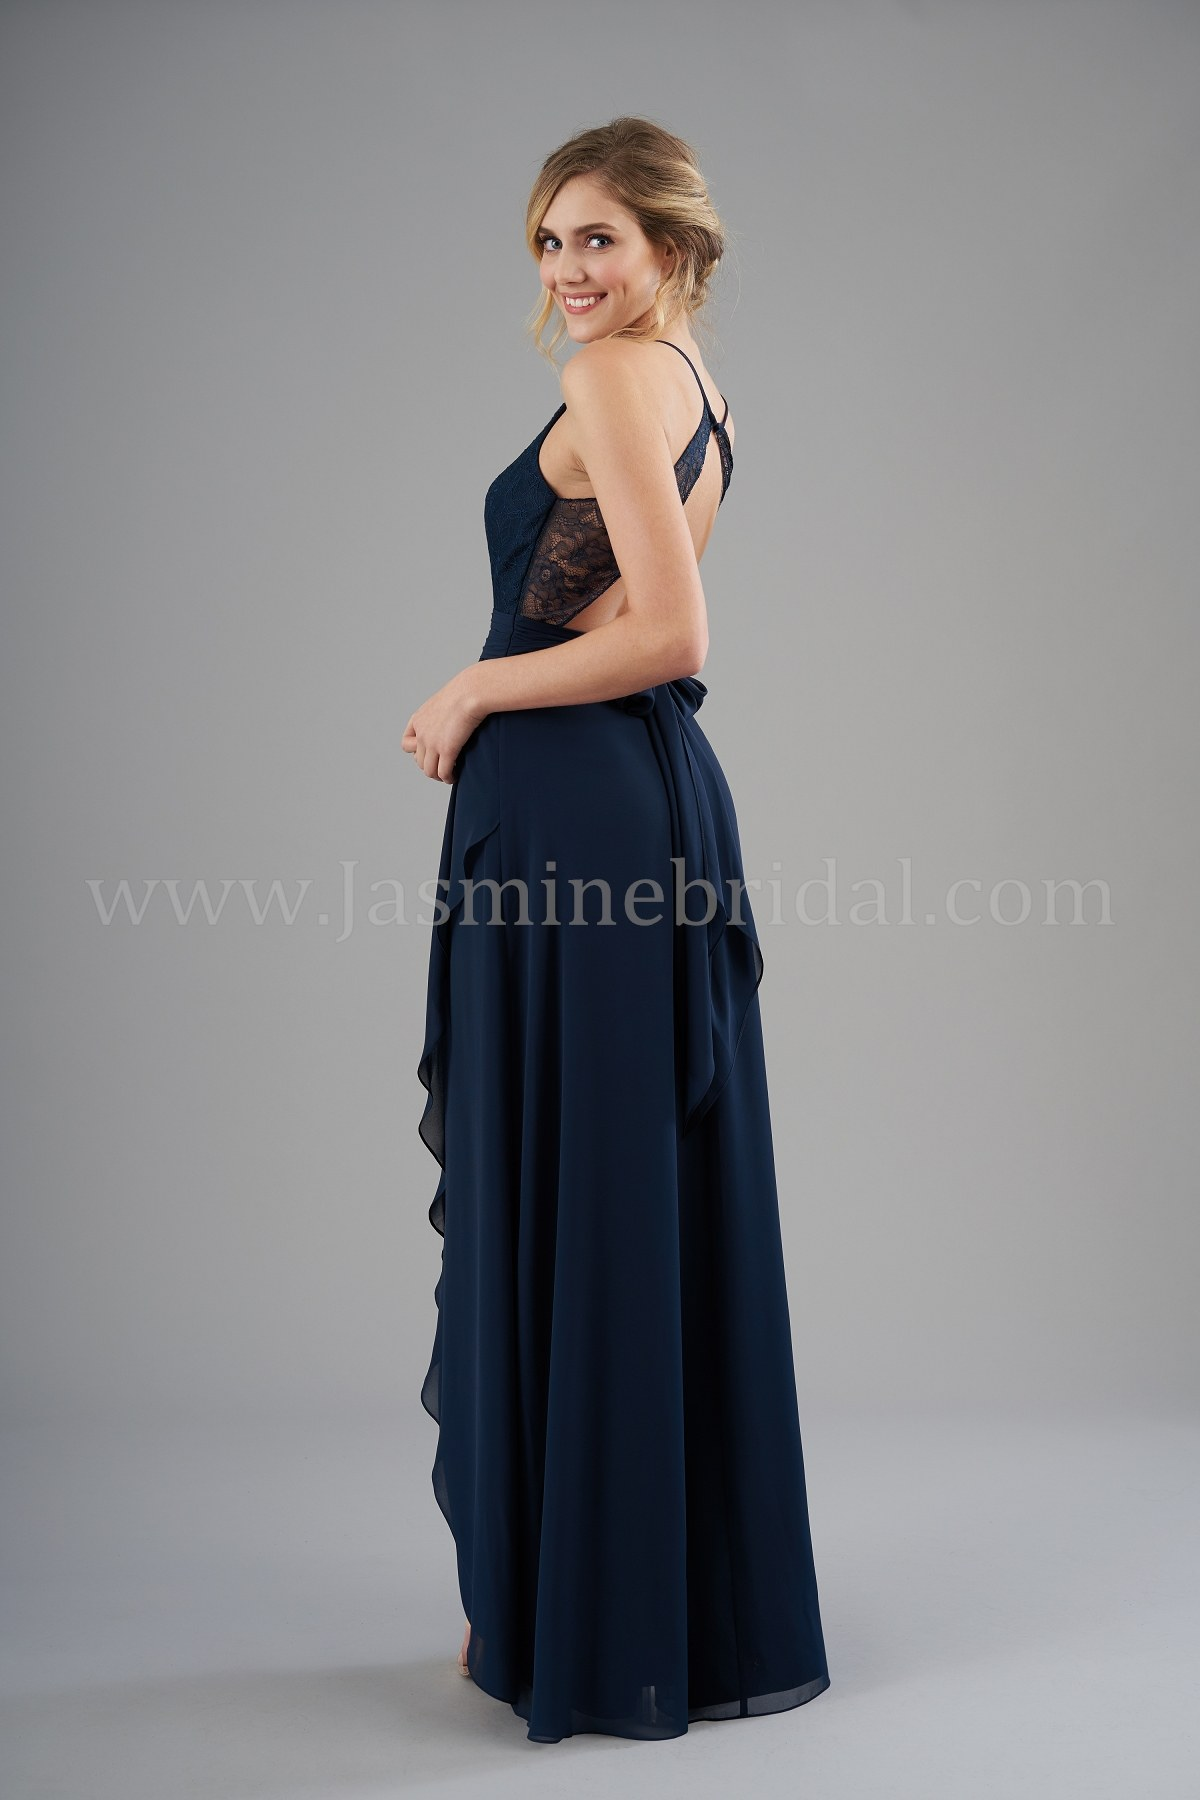 bridesmaid-dresses-B203064-B